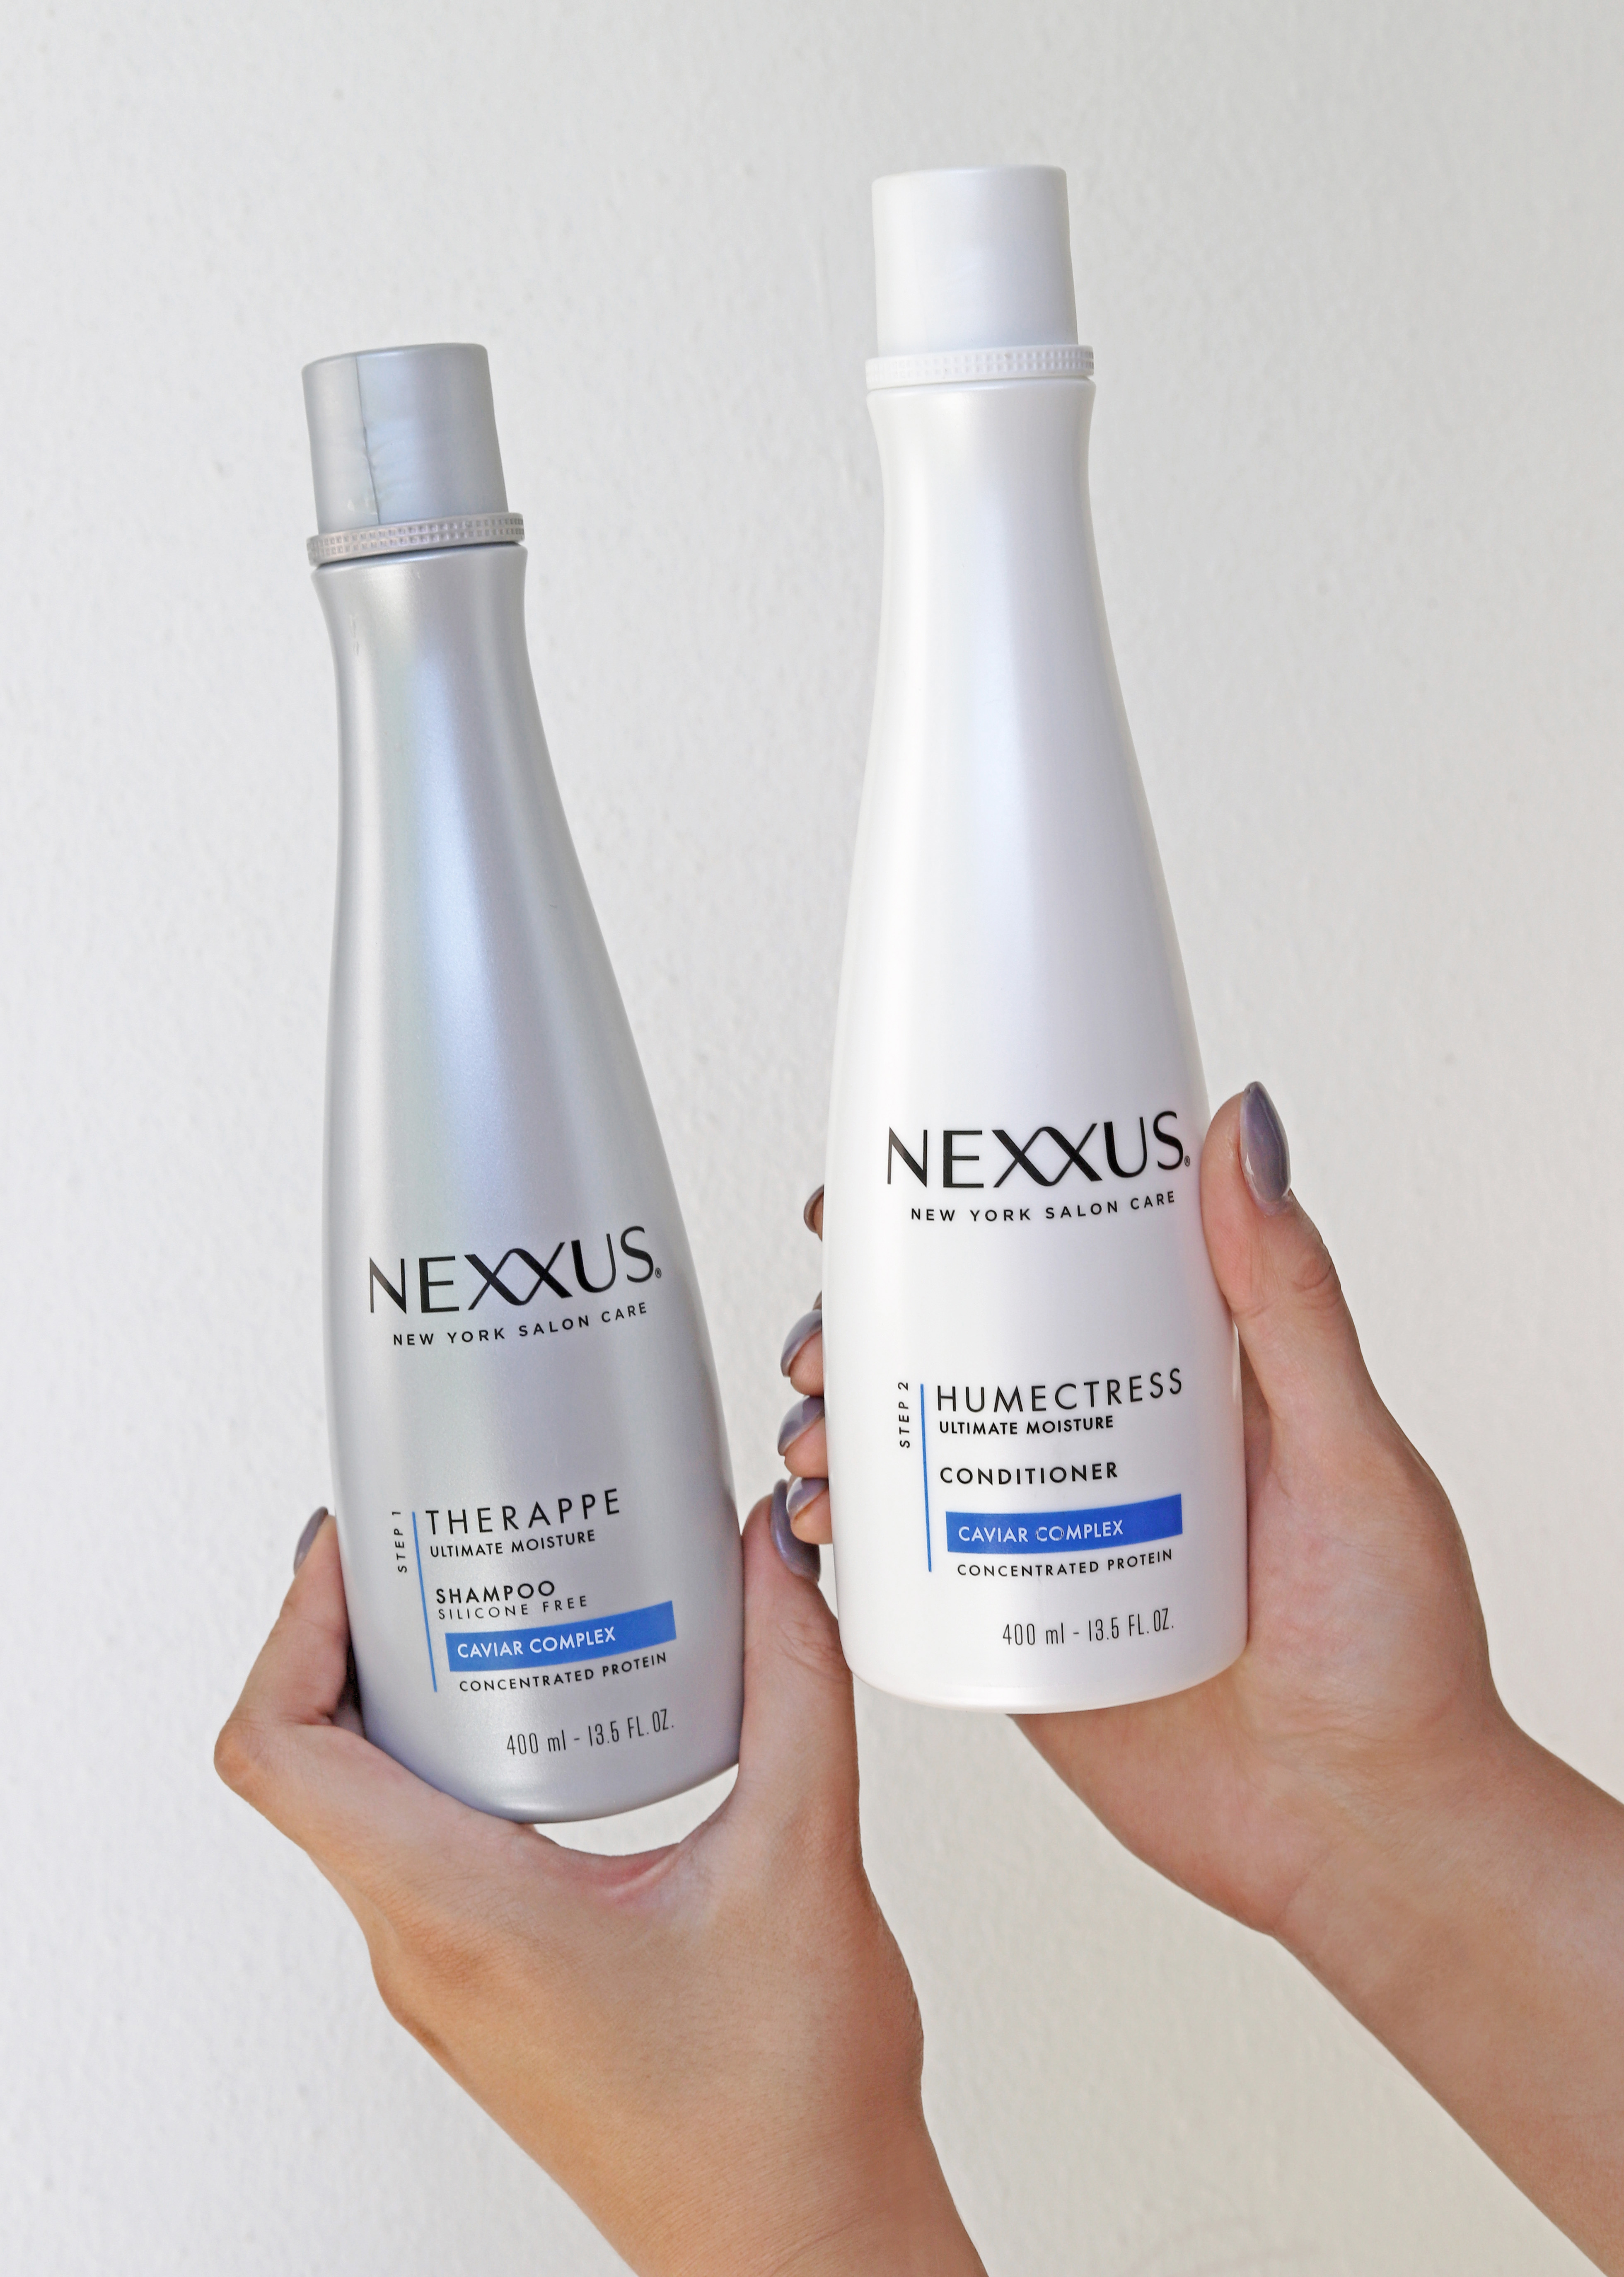 best shampoo and conditioner | balayage hair | Nexxus Therapee shampoo and Nexxus Humectress conditioner review | beauty blog Mash Elle